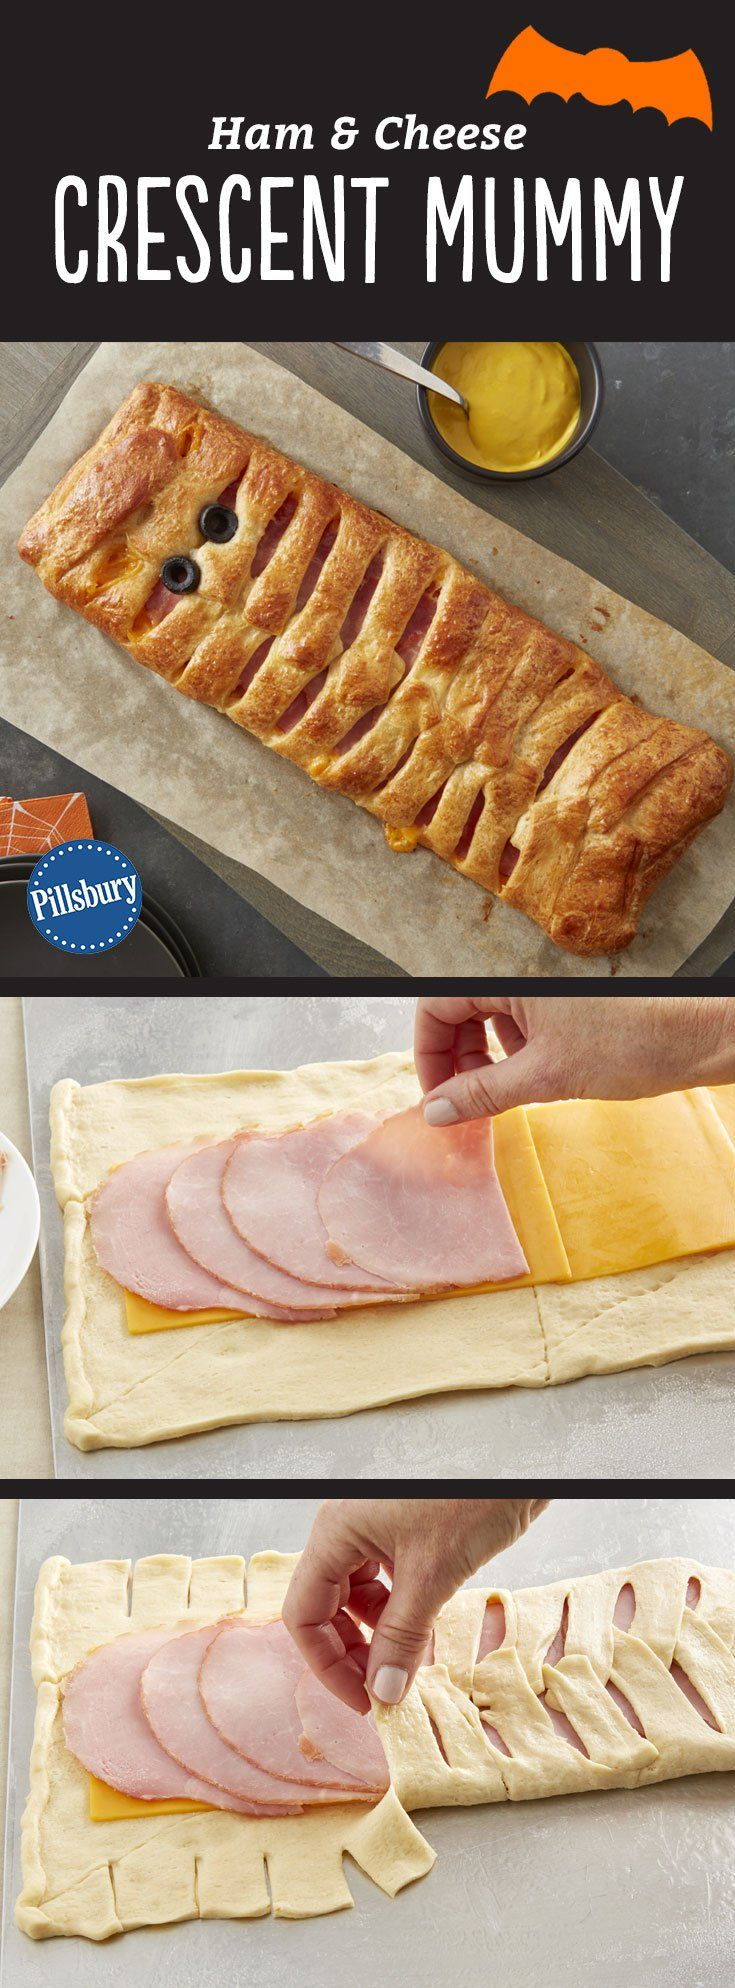 Take the spook out of deciding what's for Halloween dinner with this simple ham and cheese crescent mummy! To make all of your trick-or-treaters happy, you can swap cheese and meat for your own favorite combination, such as Swiss and turkey, or pepper Jack and chicken.